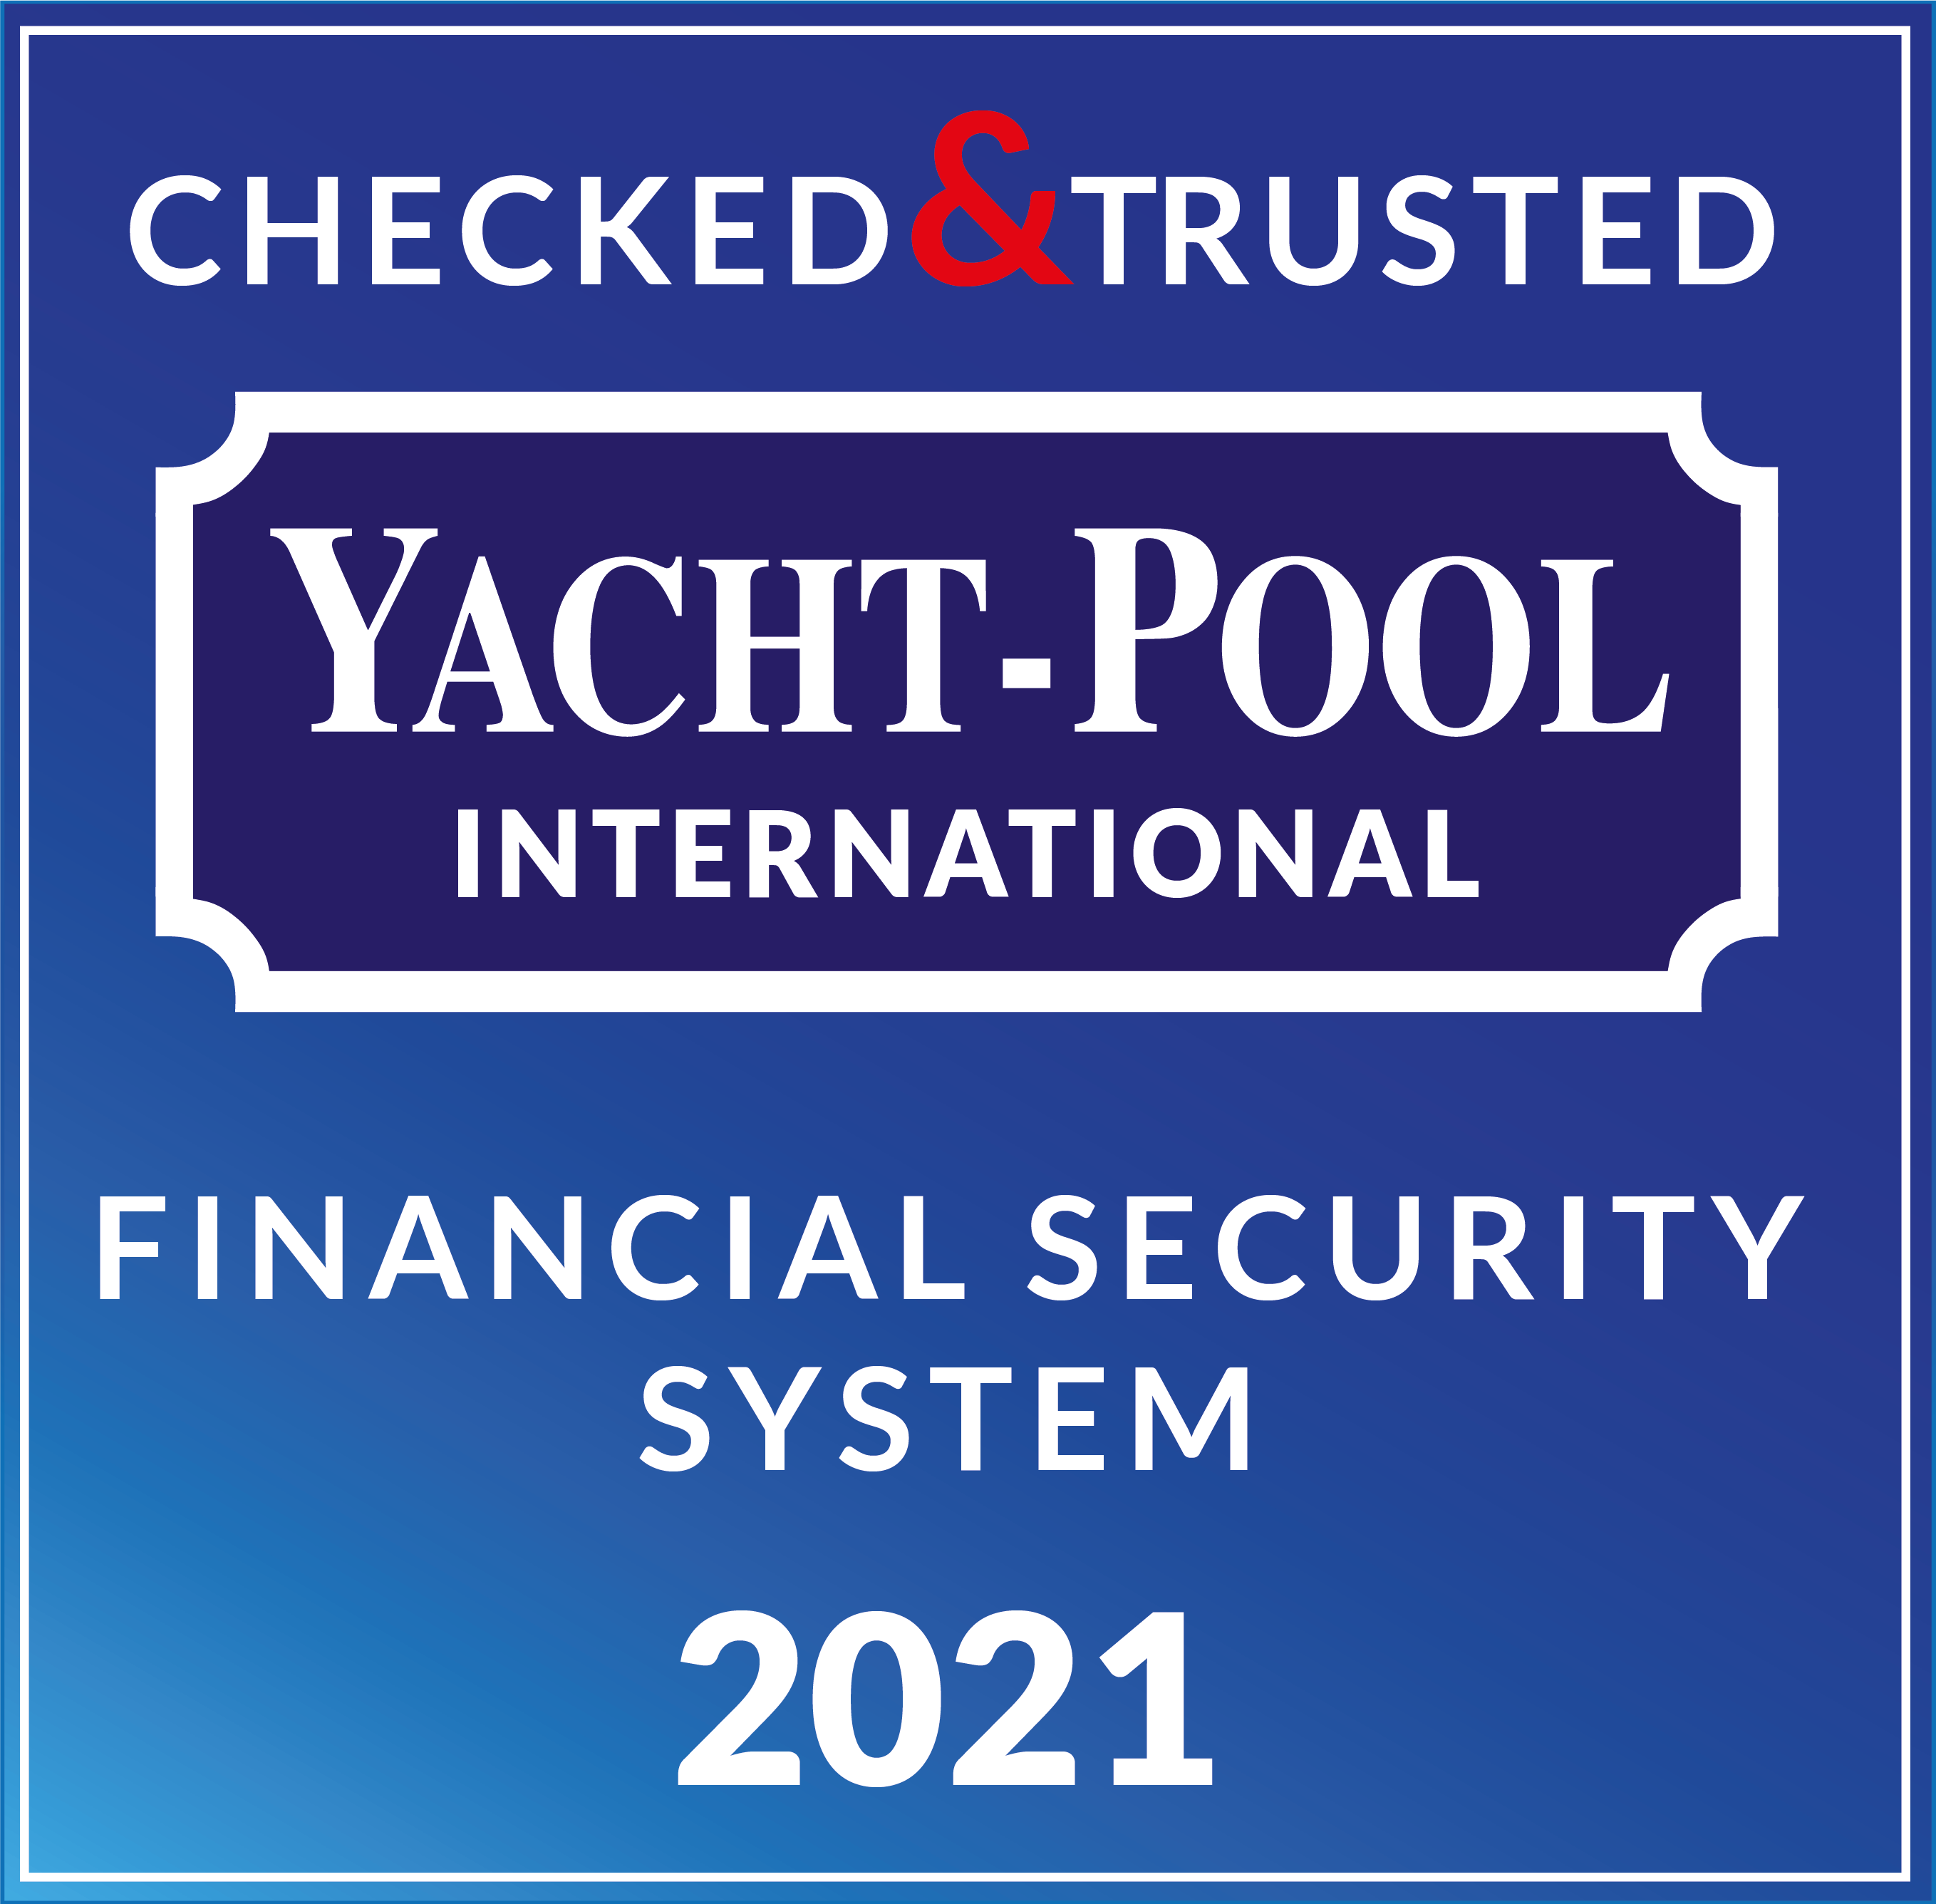 Checked & Trusted by Yacht-Pool International